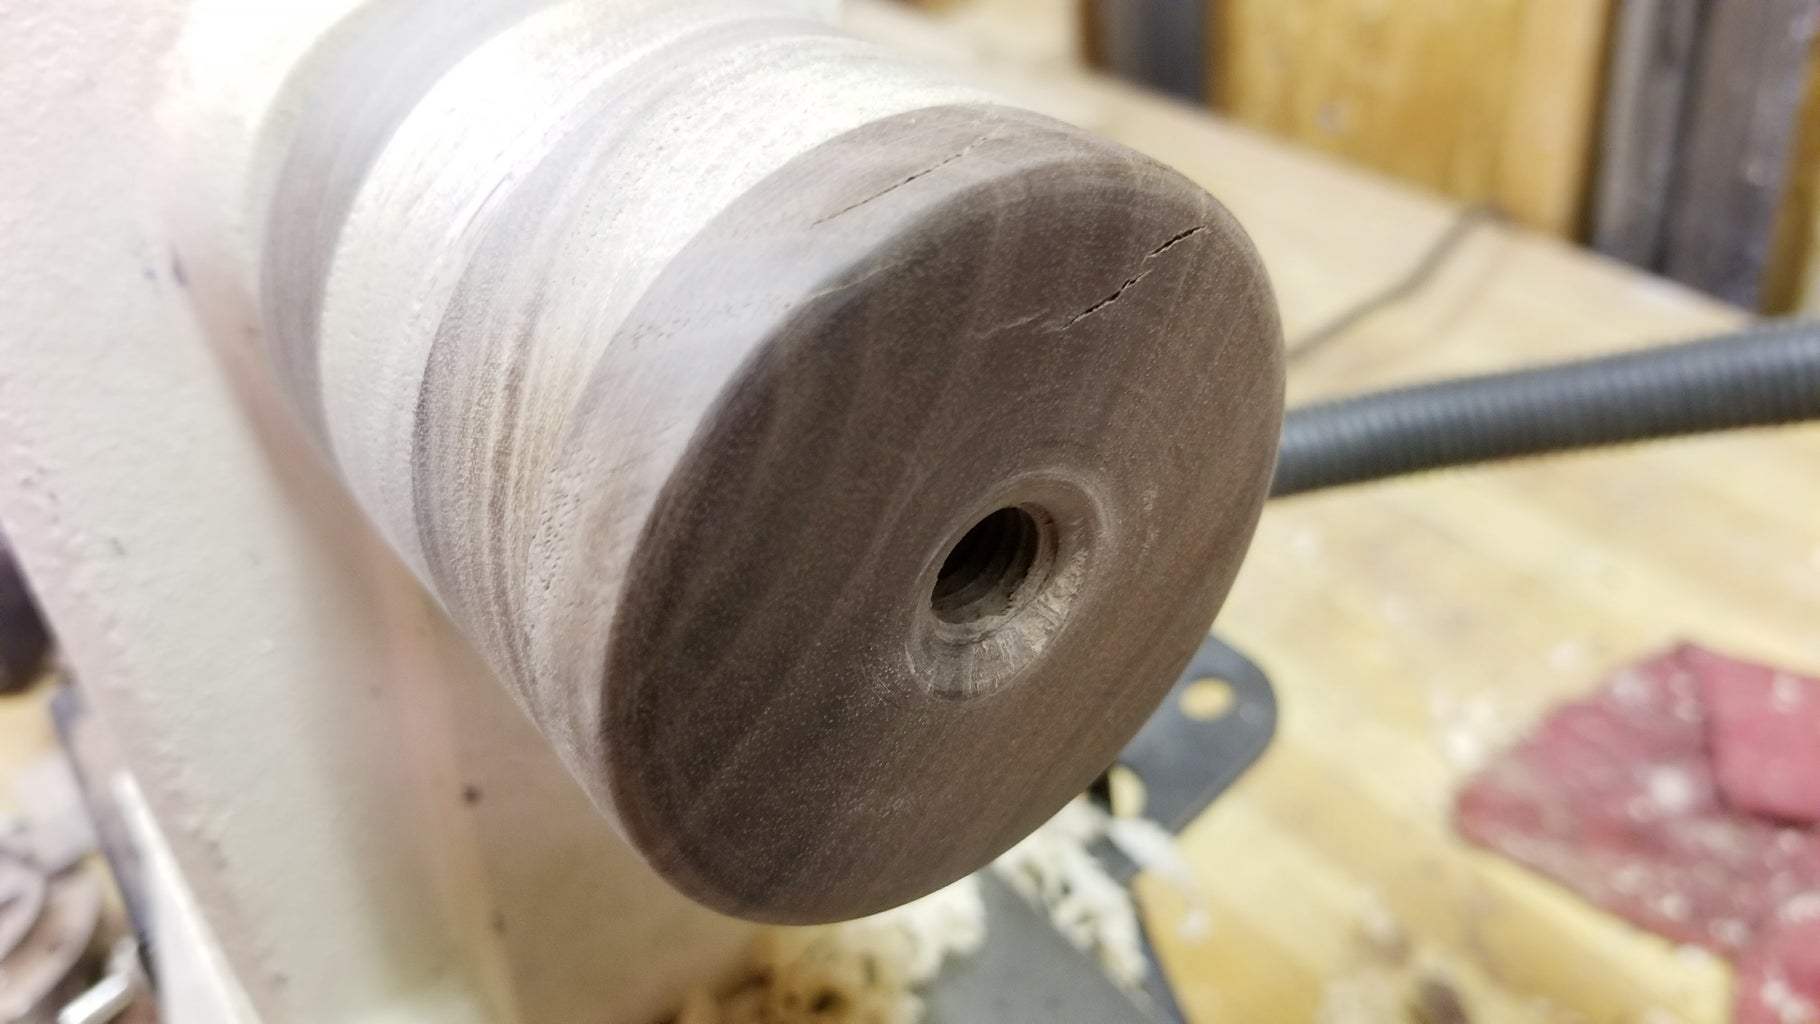 Insert Threads in Coupling